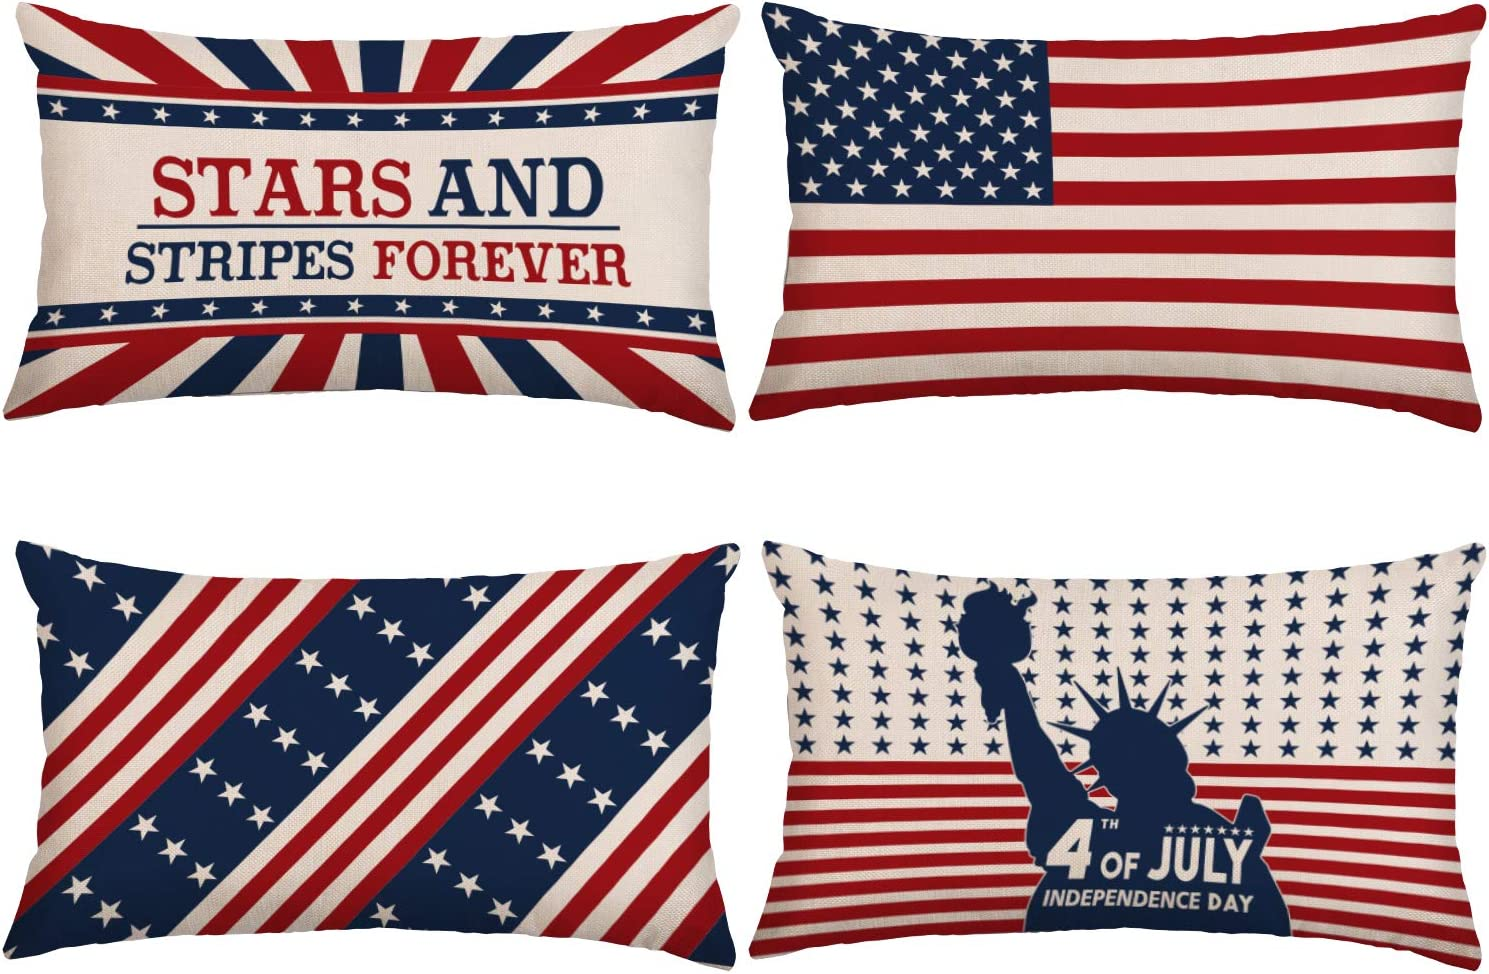 Whaline Seattle Mall 4th of July Pillow Cover Be super welcome Cush Rectangle Throw Patriotic